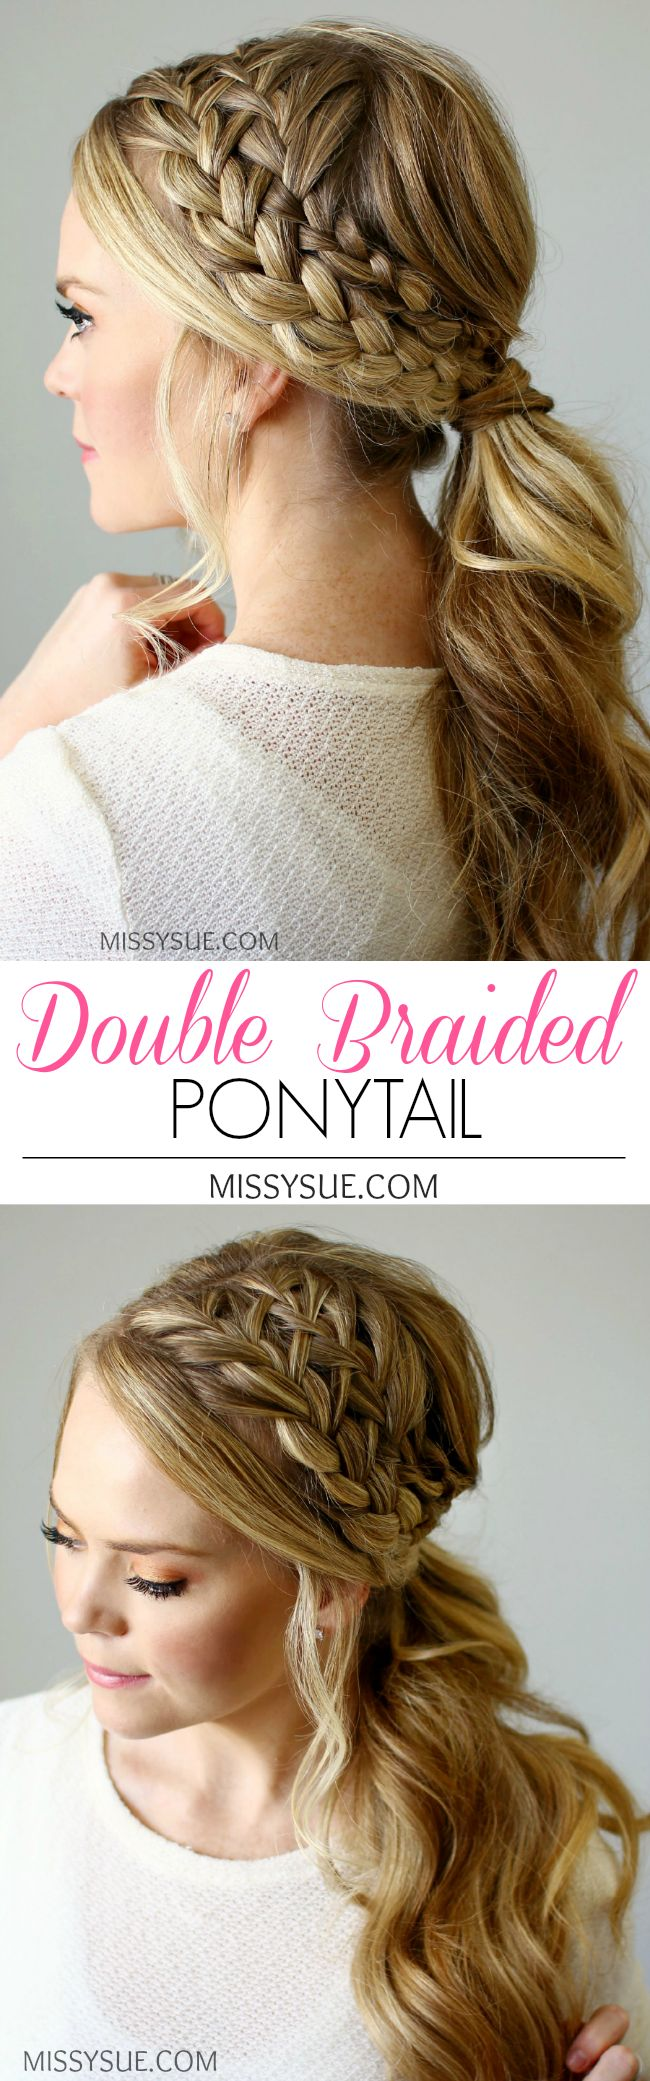 Sensational 1000 Ideas About Easy Braided Hairstyles On Pinterest Types Of Short Hairstyles For Black Women Fulllsitofus